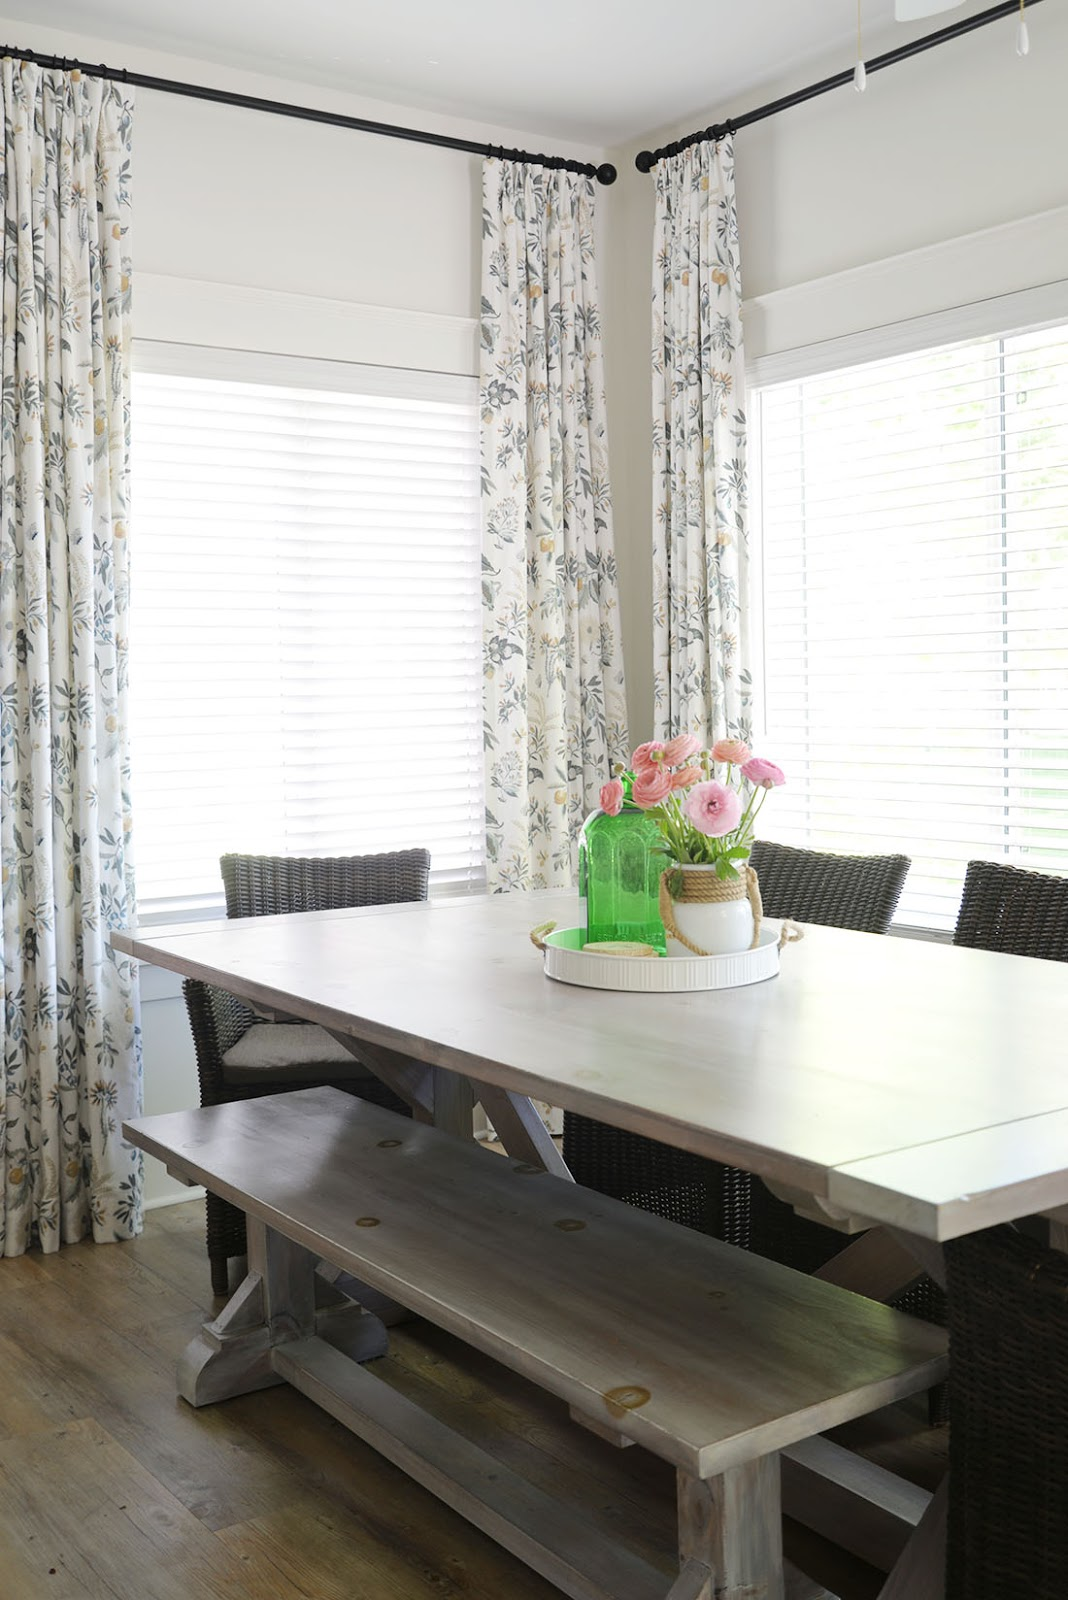 x base harvest table with bench, fleur botanical la mer fabric, cottage dining room ideas, modern country decor